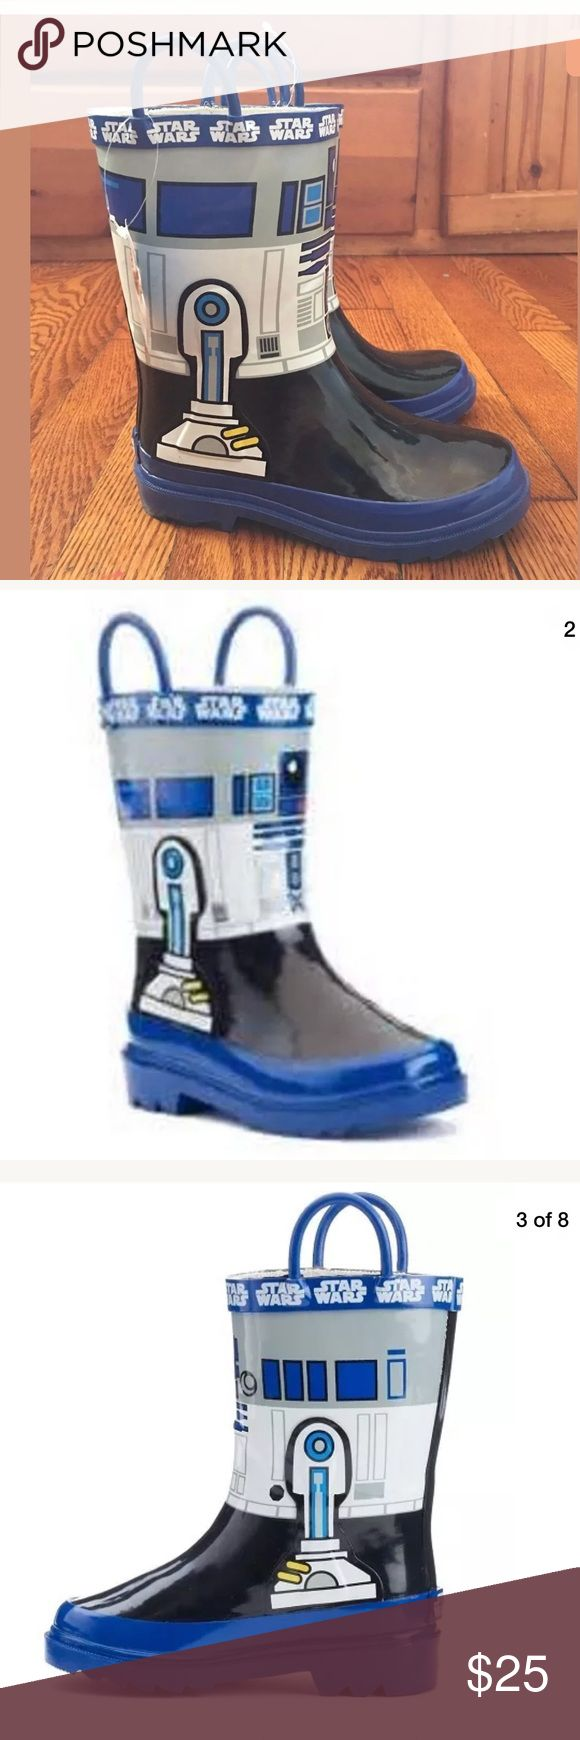 Disney Star Wars R2-D2  Boys Rain Boots 13  1 Star Wars R2-D2  Boys Rain Boots  Size 13  and 1 New without box  Smoke and pets free home Disney Shoes Rain & Snow Boots